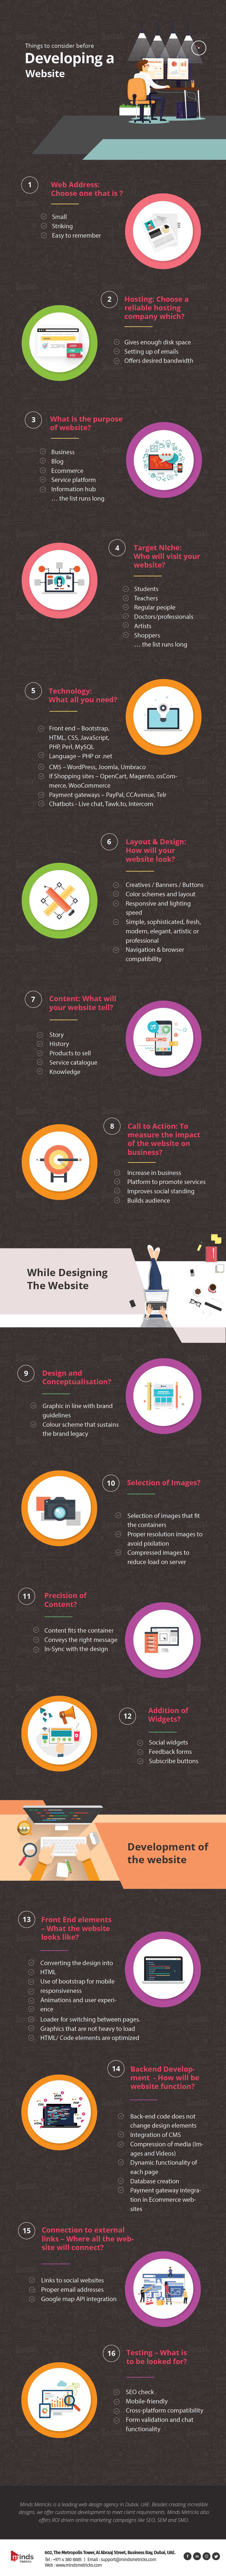 Things-to-consider-before-developing-website-infographic-plaza